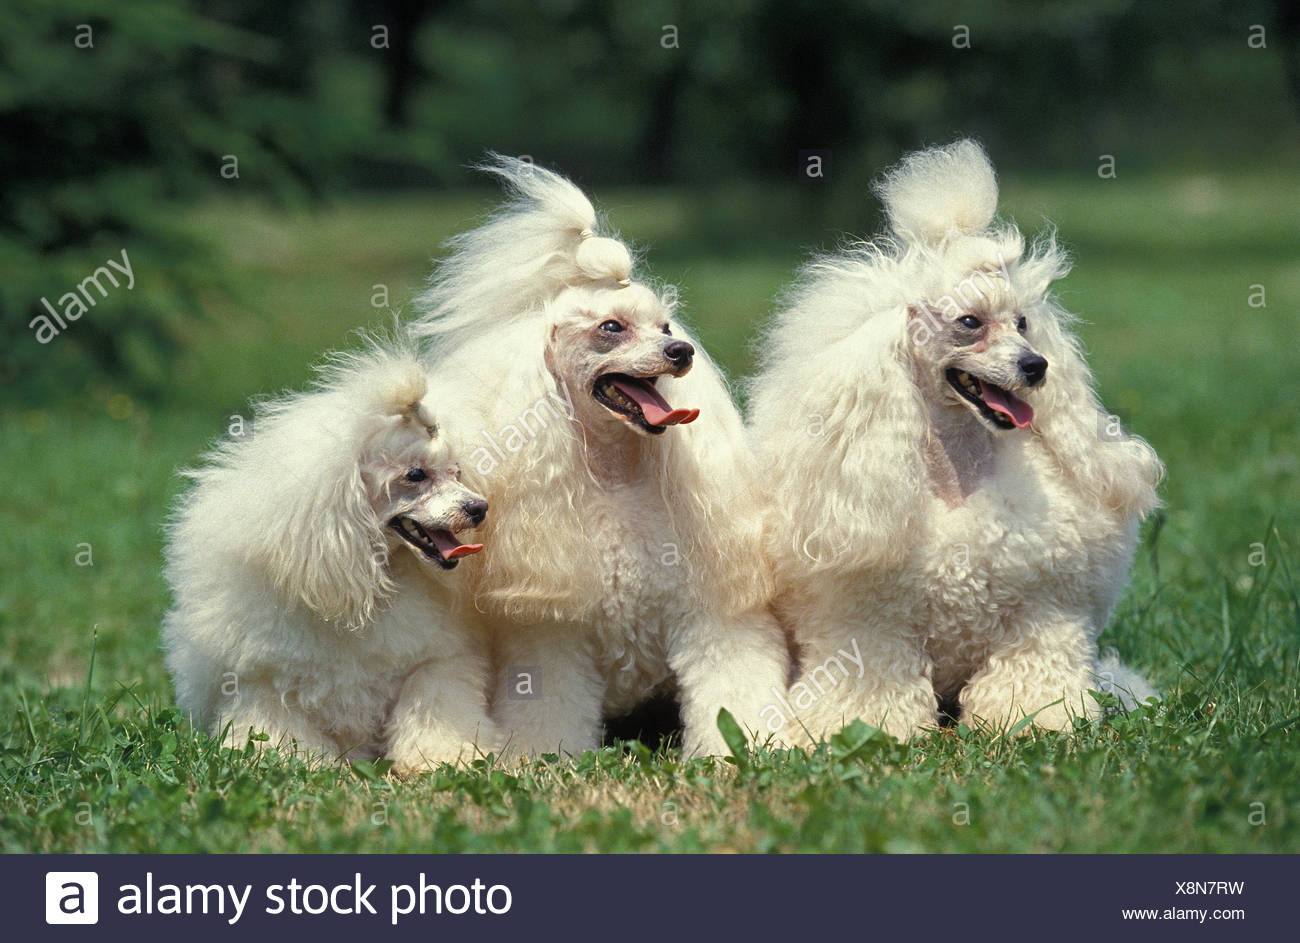 White Miniature Poodle dog Sitting on Grass - Stock Image